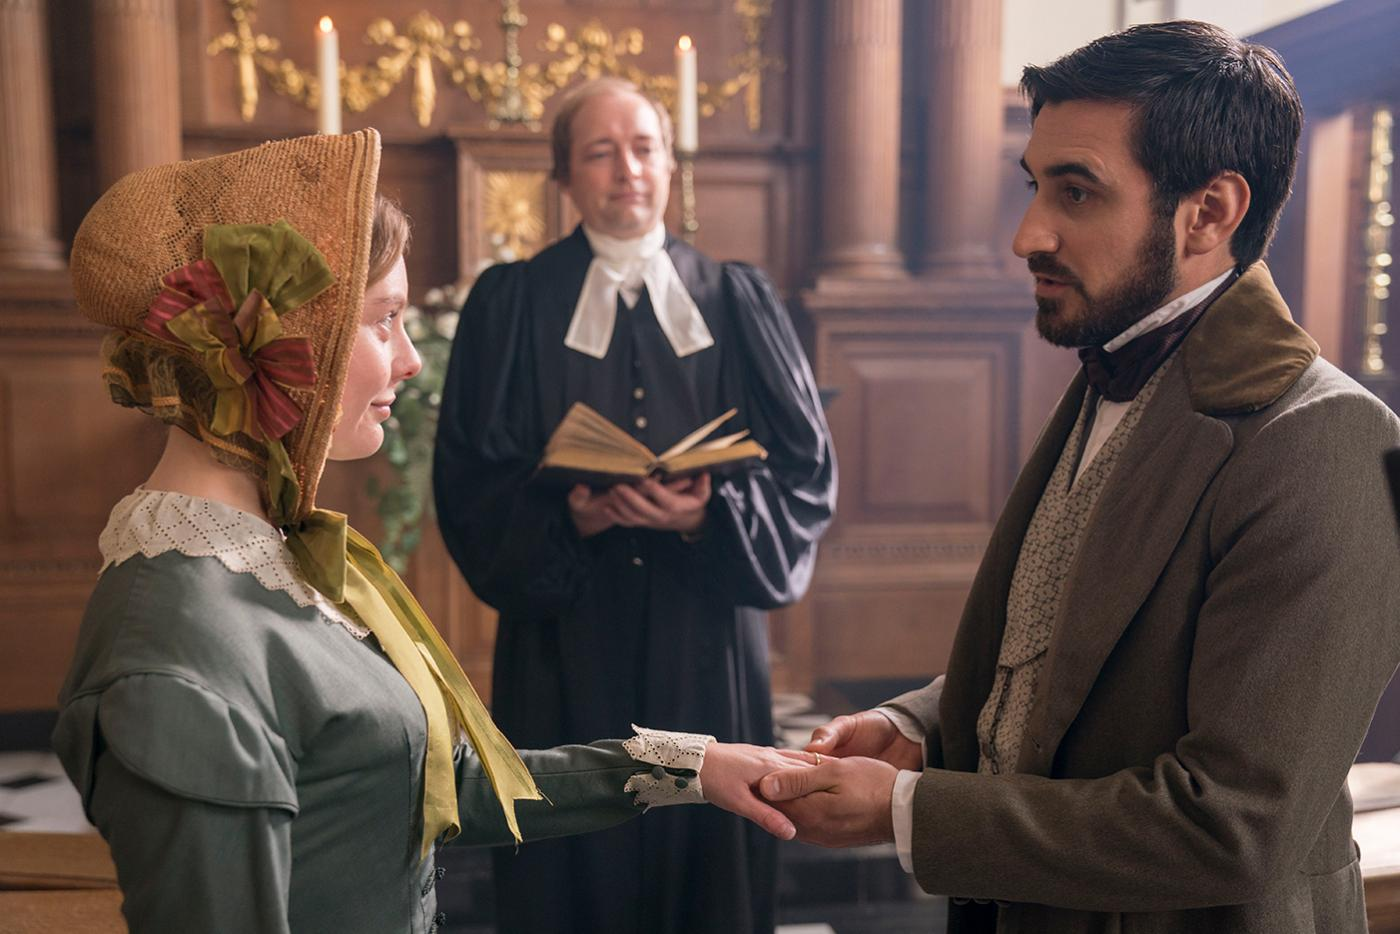 Nell Hudson as Skerrett and Ferdinand Kingsley as Francatelli in Victoria. Photo: Aimee Spinks/ITV Plc for MASTERPIECE